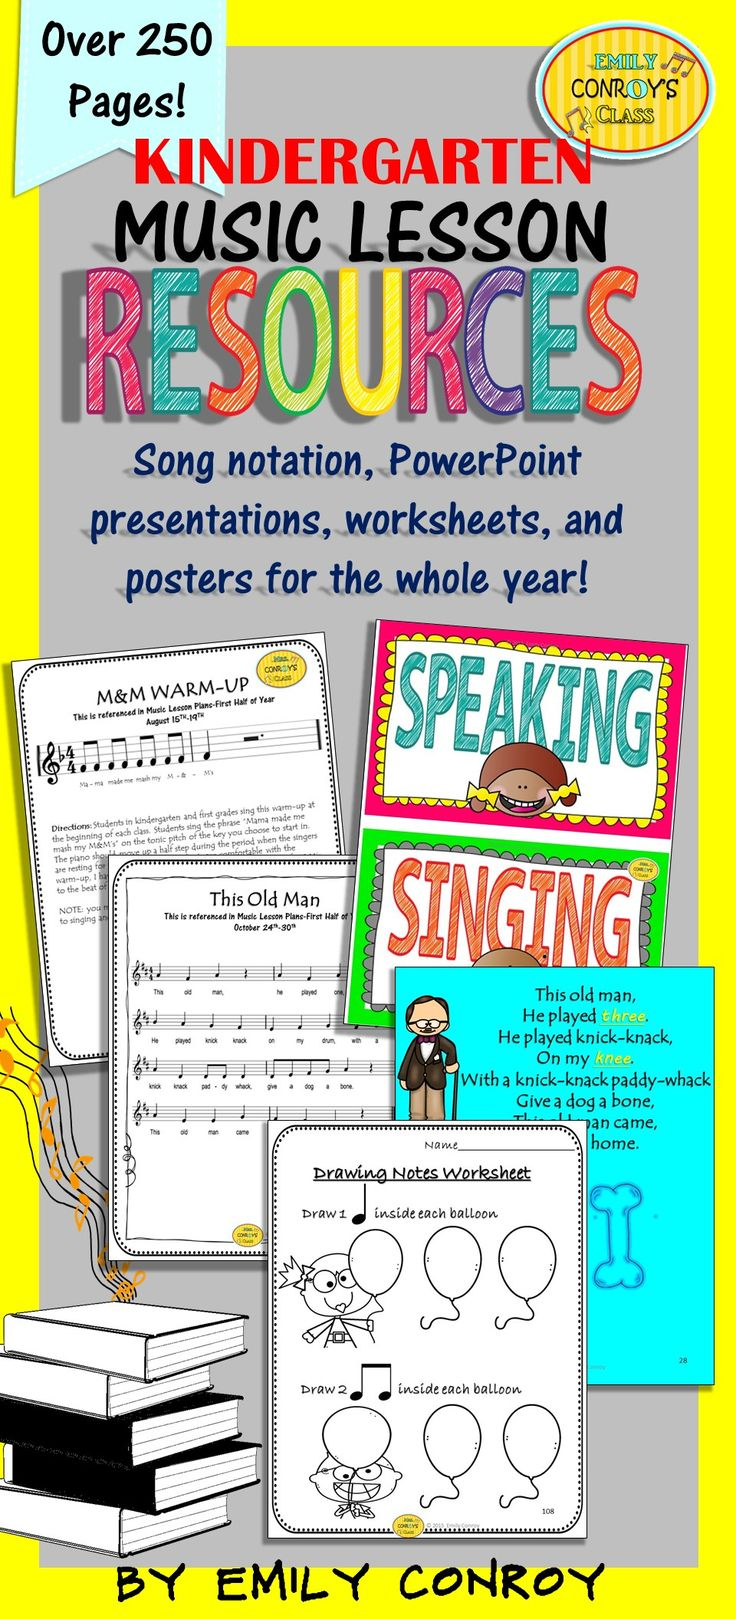 Music Resources for Kindergarten-Over 250 pages of worksheets, assessments, PowerPoints, songs, and manipulatives for the WHOLE year!